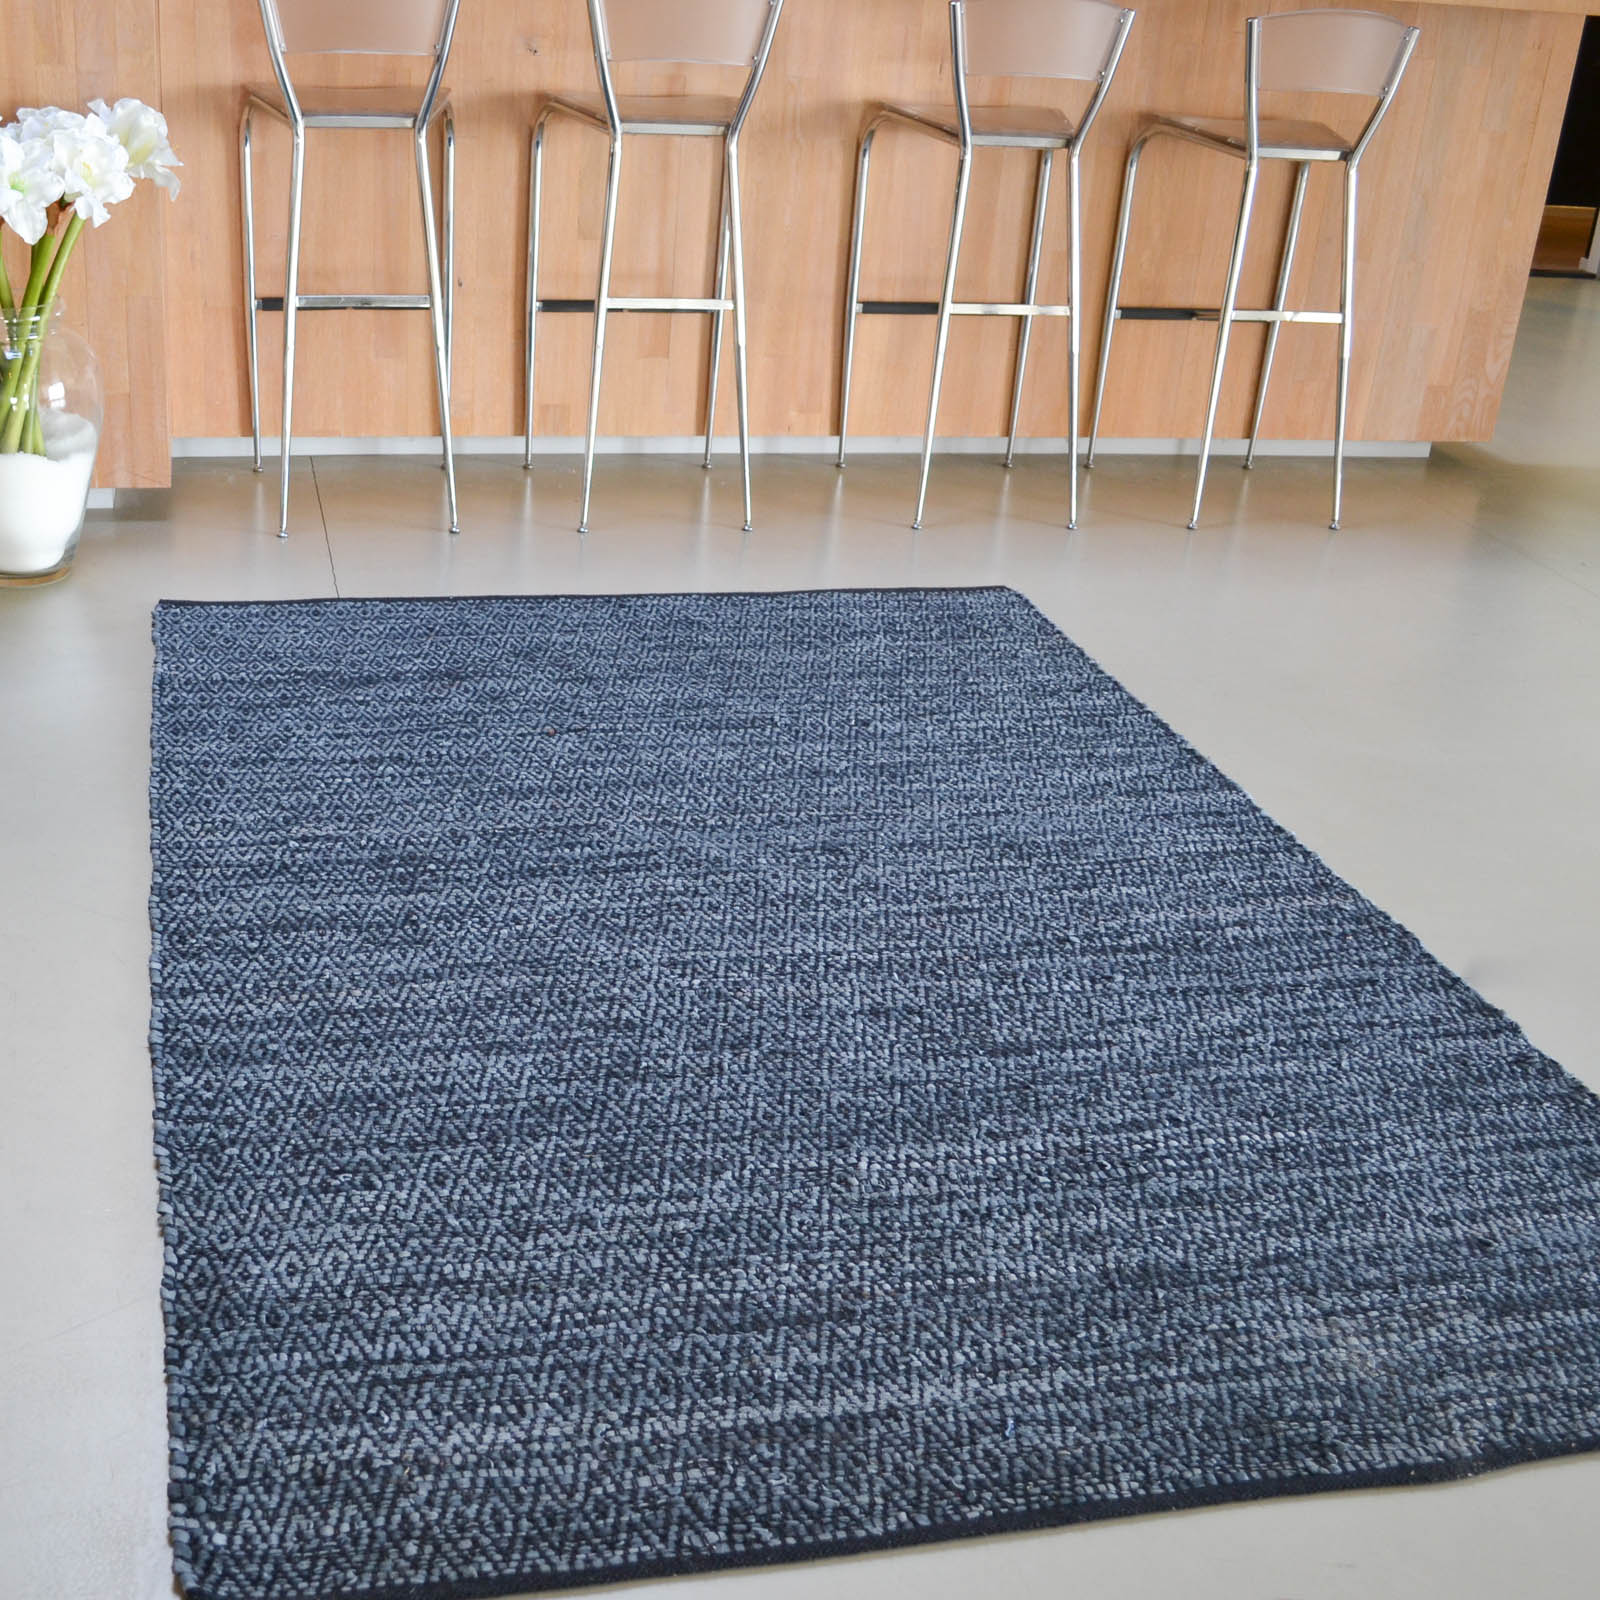 Tribe Leather Flatweave Rugs 79905 by Brink and Campman